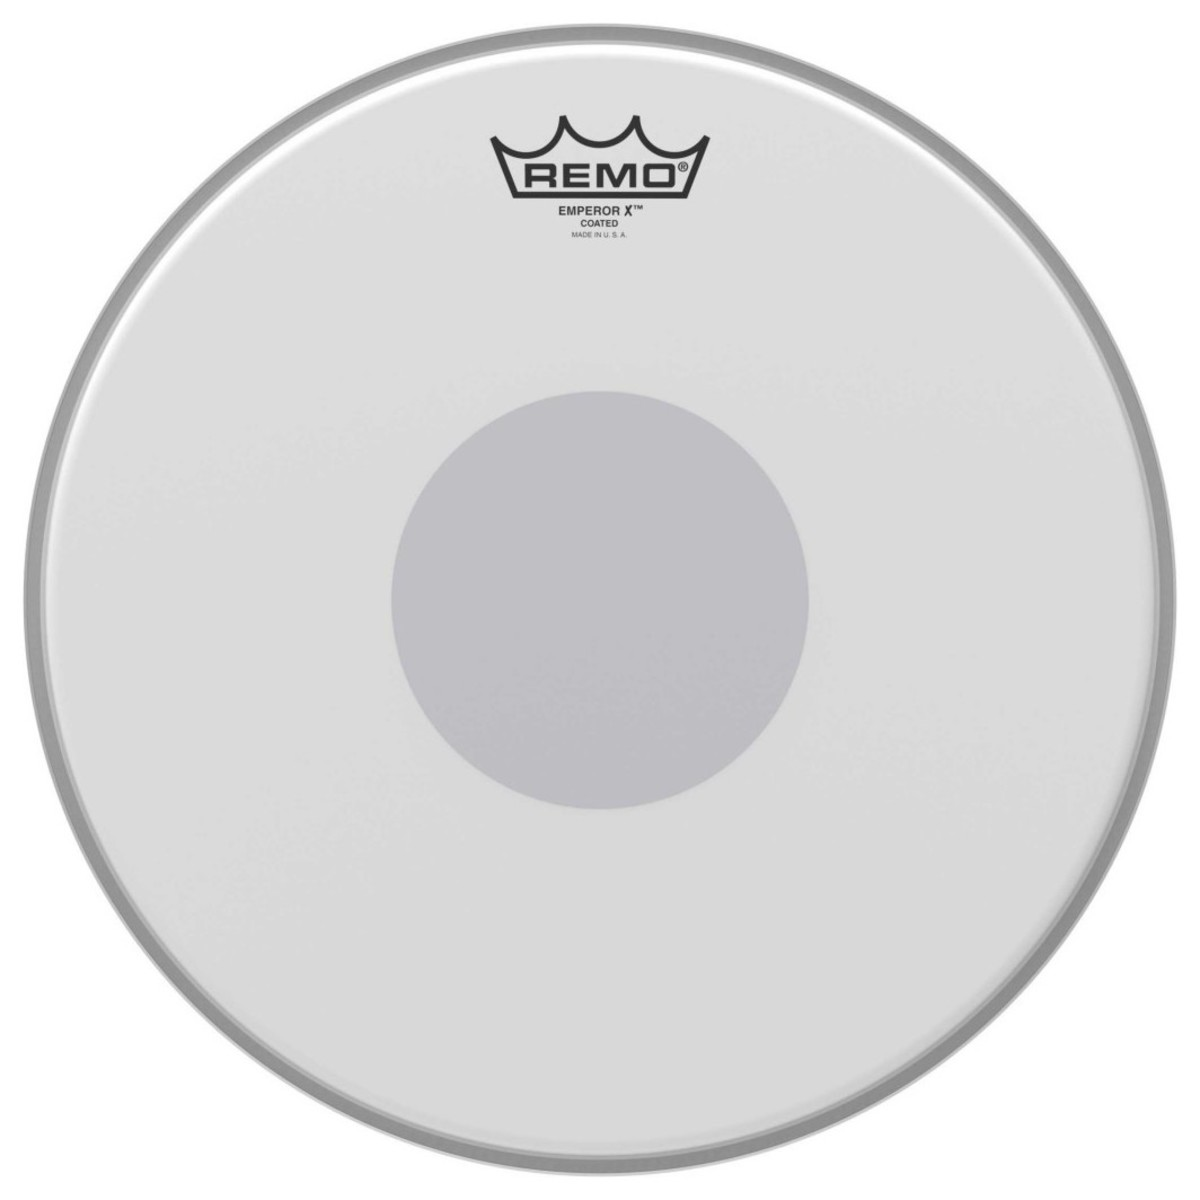 remo emperor x coated 13 39 39 reverse dot drum head at gear4music. Black Bedroom Furniture Sets. Home Design Ideas